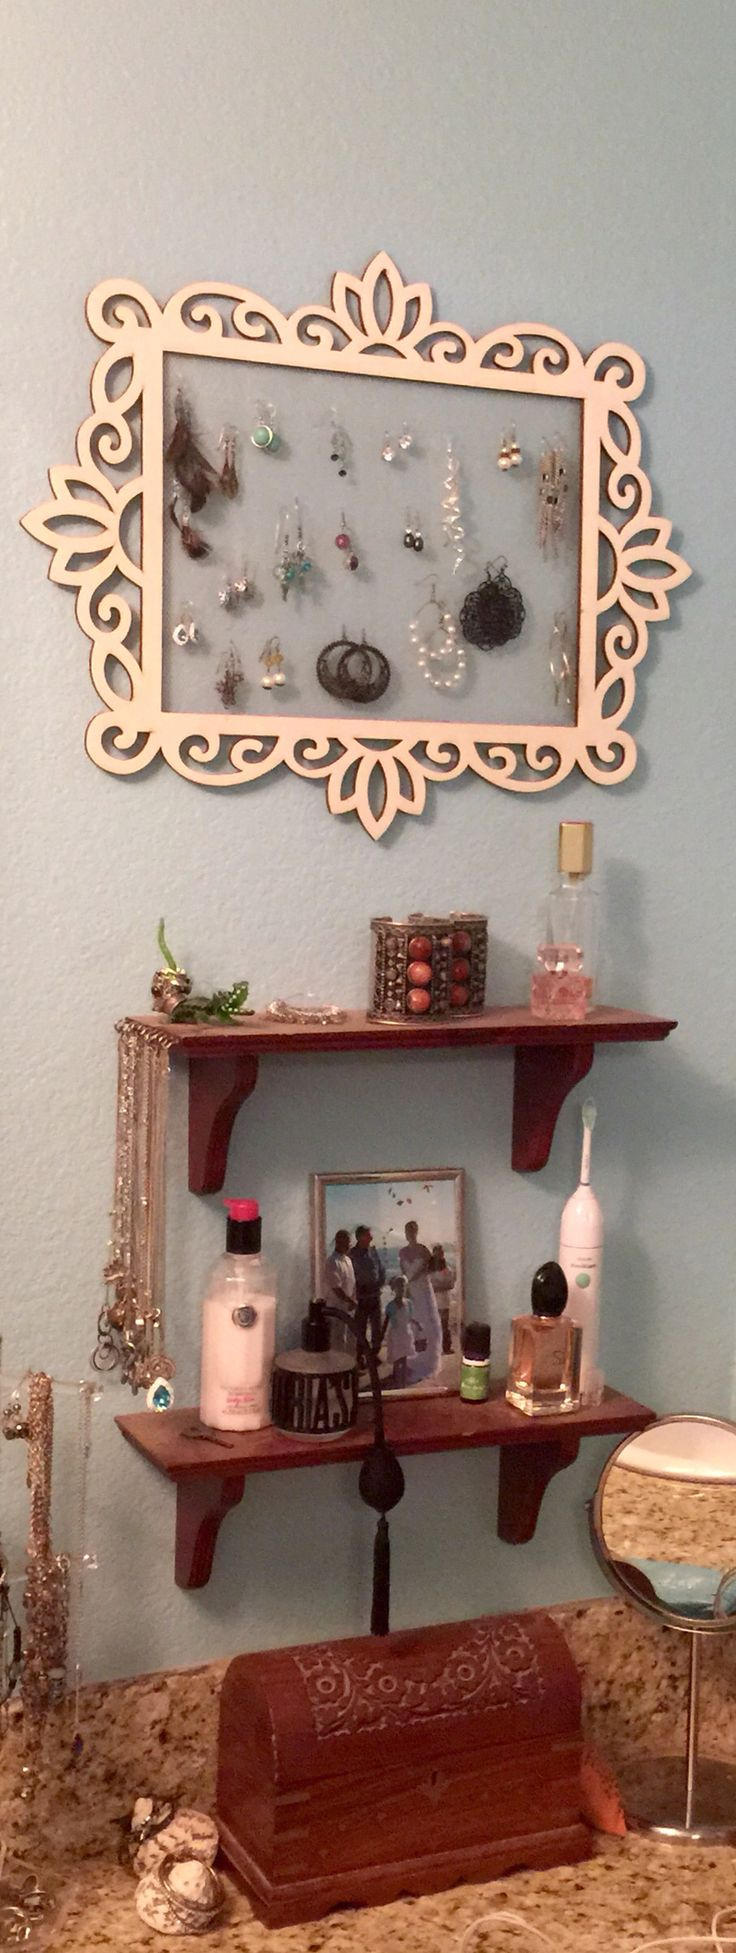 Jewelry displays...hooks fastened into shelving for necklaces and a wooden frame with a screen back for earrings!